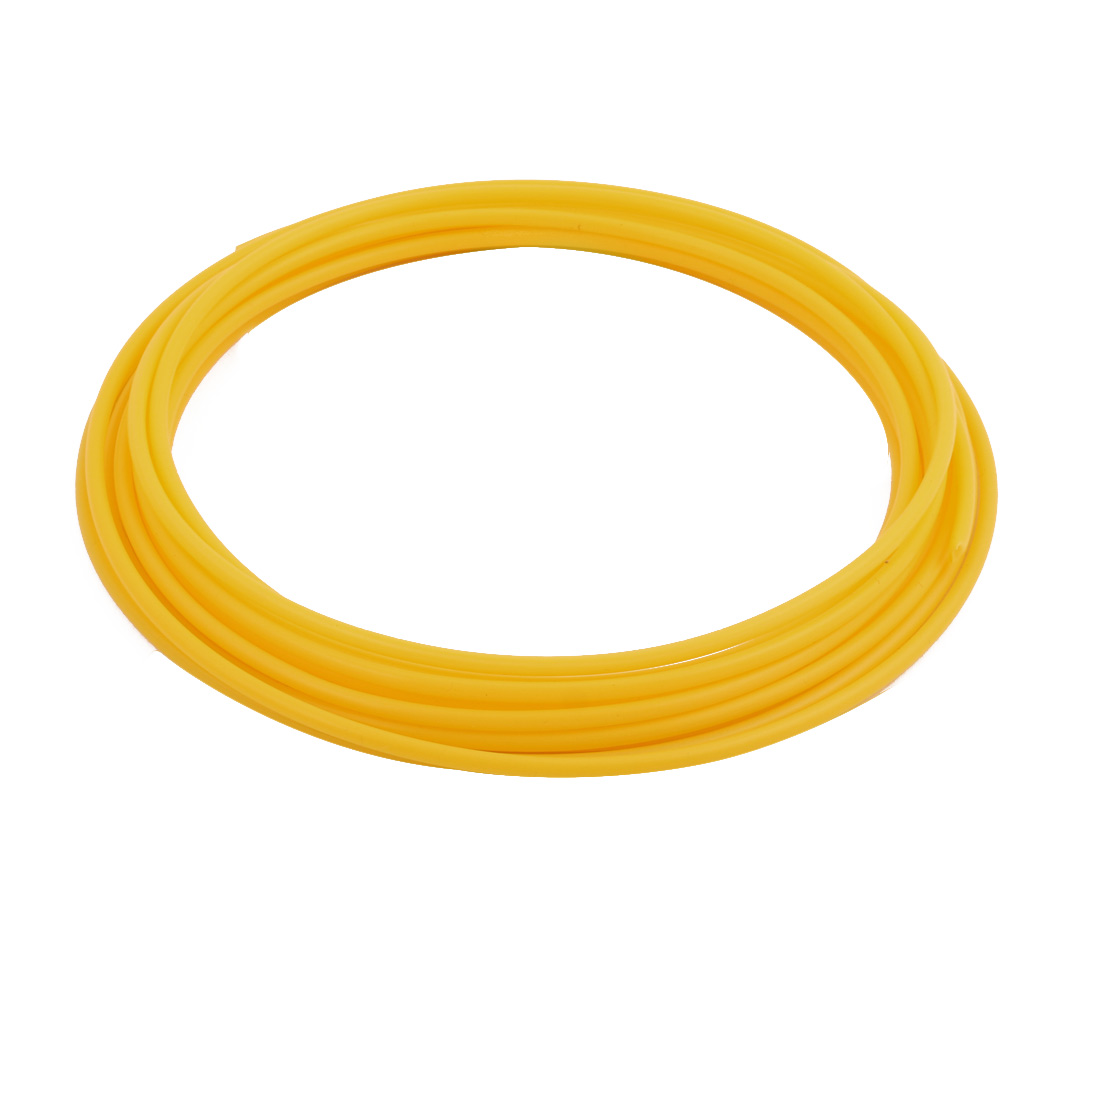 2.69mmx3.09mm PTFE Resistant High Temperature Yellow Tubing 5Meters 16.4Ft